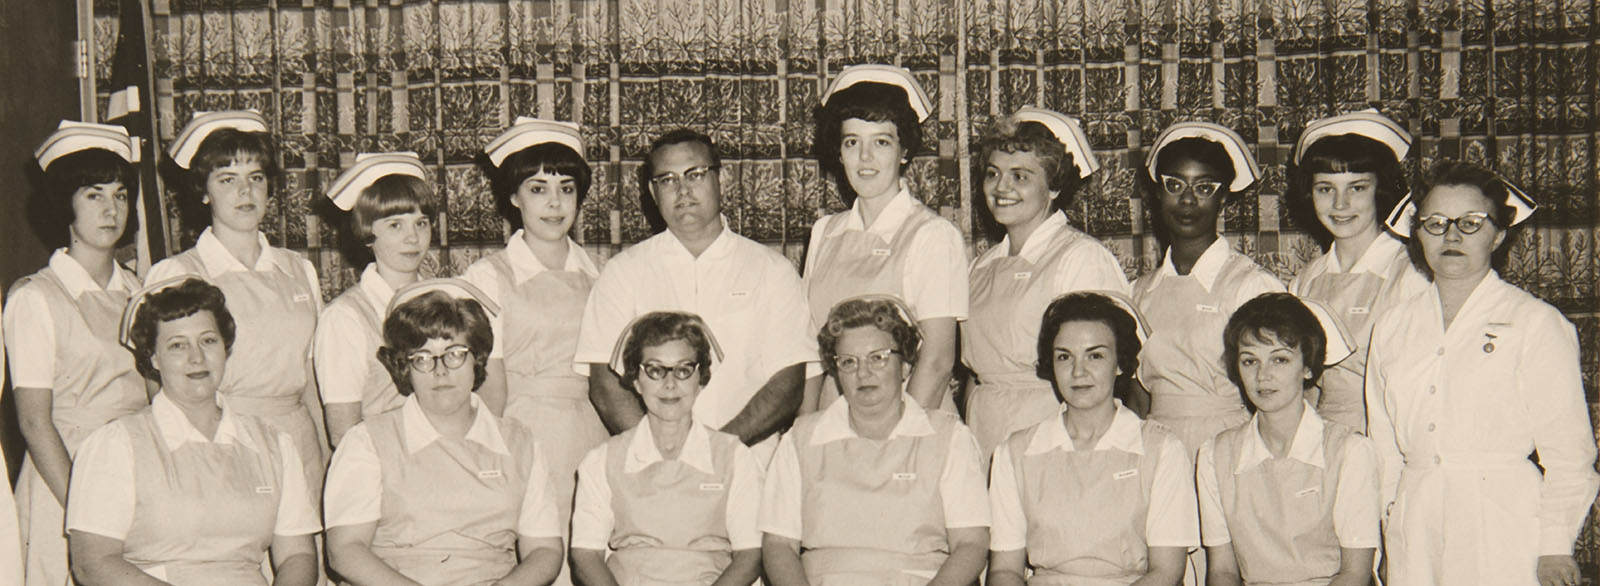 Group photo of nurses from the 1960s